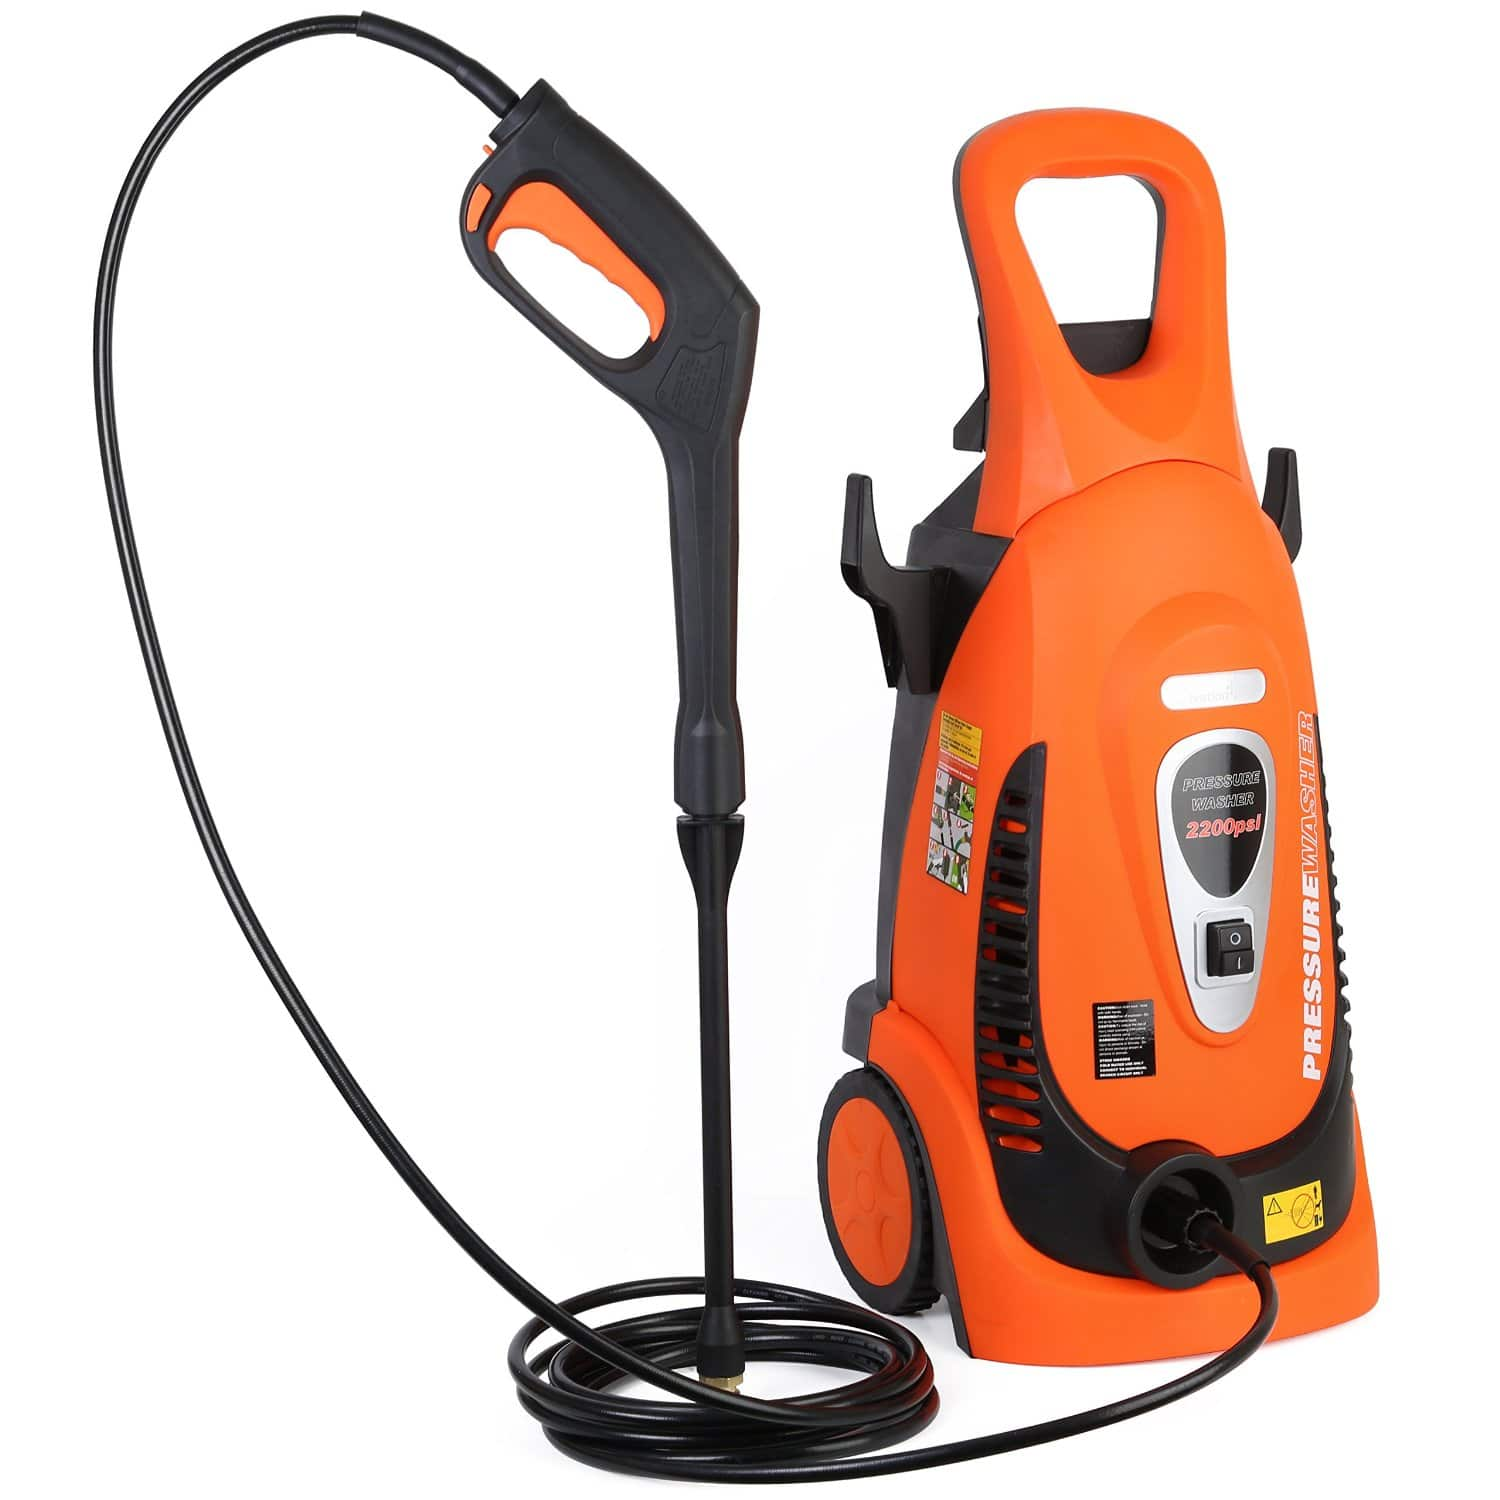 Ivation Electric Pressure Washer 2200 PSI 1.8 GPM with Power Hose Nozzle Gun and Turbo Wand for $129.95 + FSSS @ Amazon